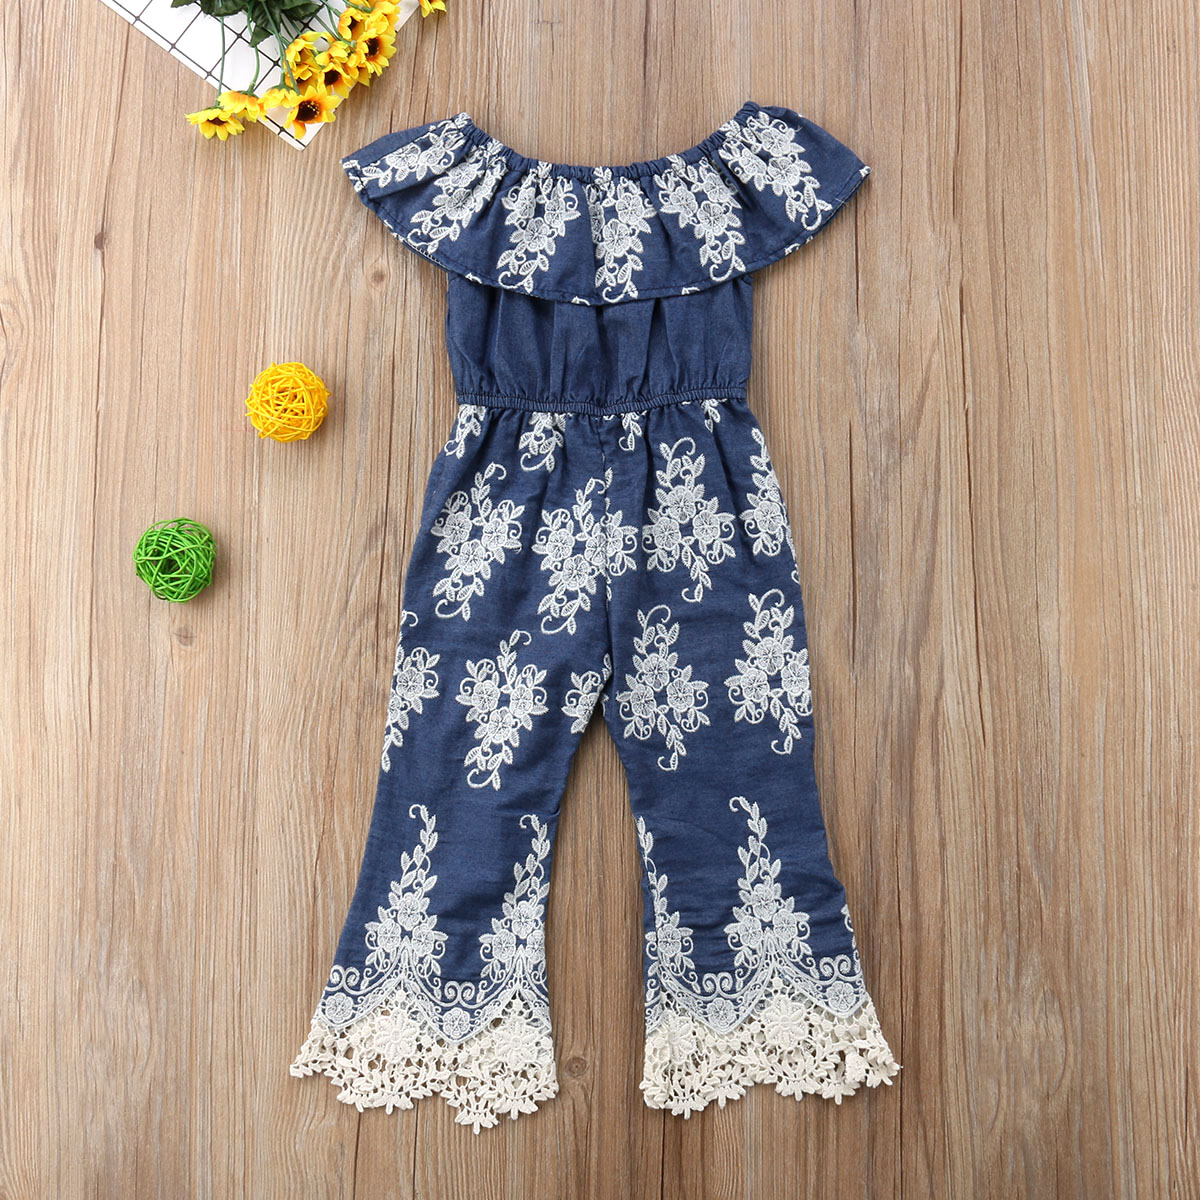 375d2c4e6a7db 2018 Brand New Princess Sweet Summer Kid Dress Baby Girls Embroidery Lace  One Piece Jumpsuit Romper Dress 1 6T-in Dresses from Mother & Kids on ...